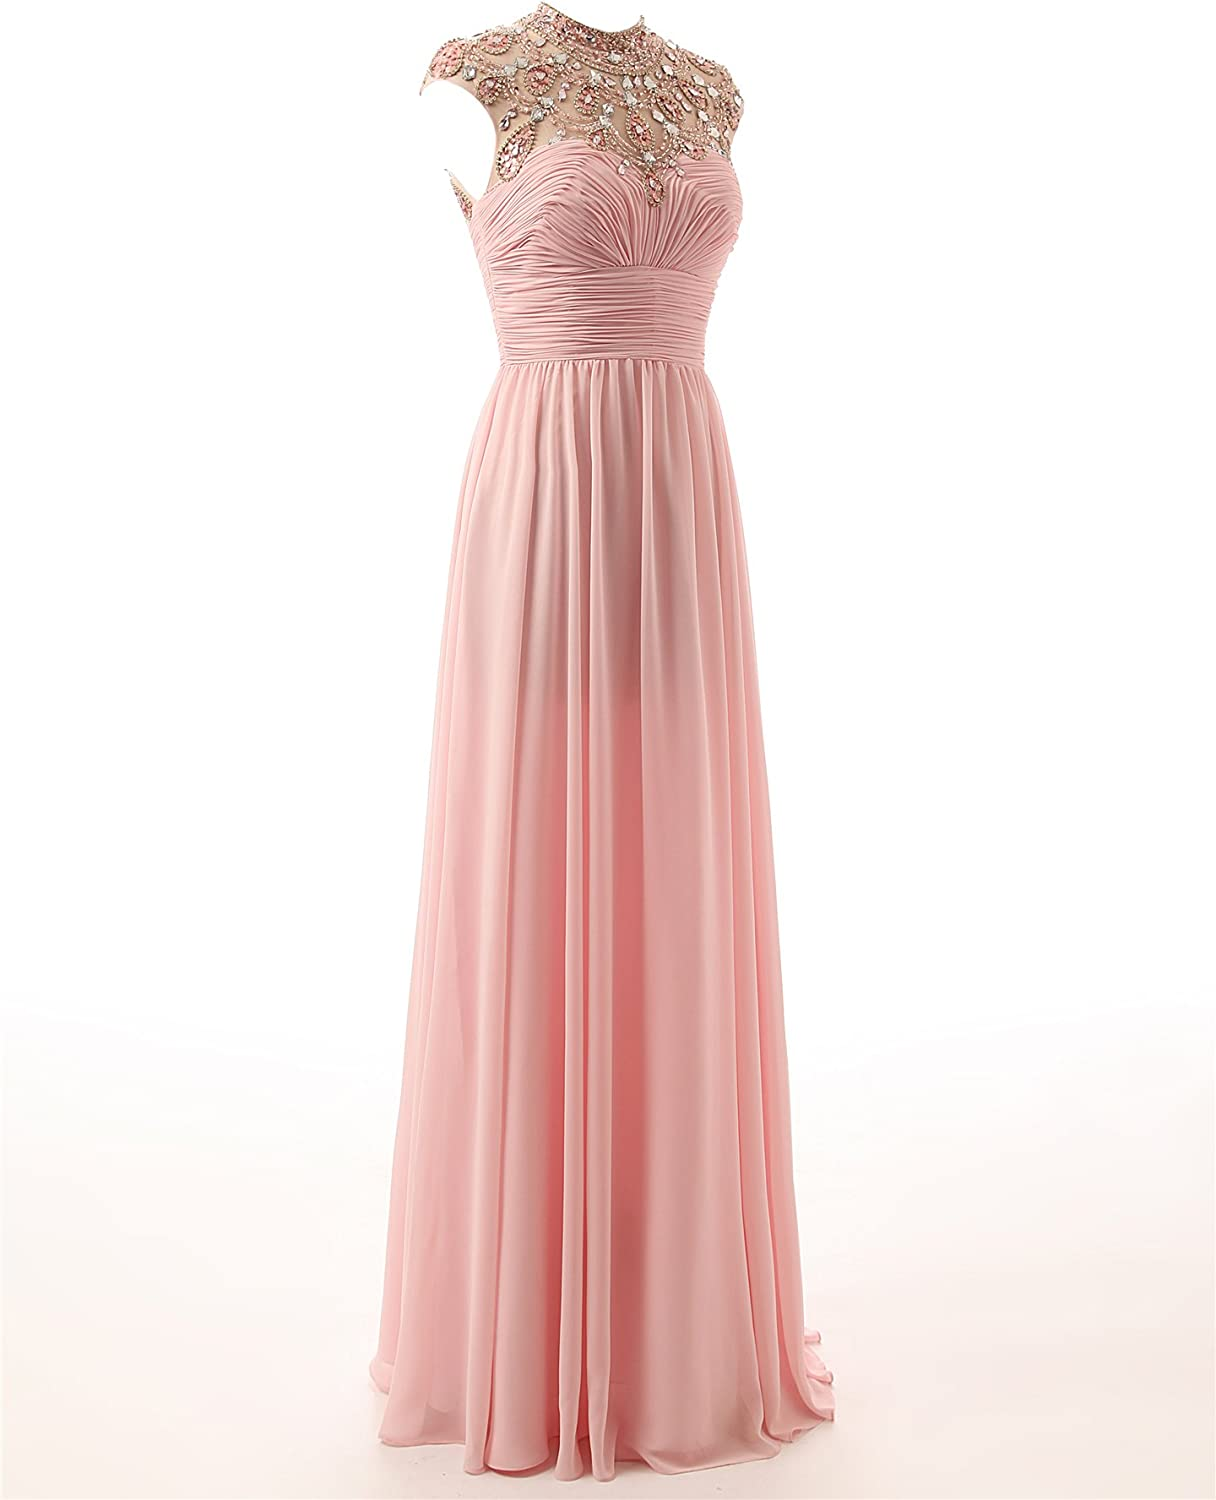 Changjie Damen High Neck Empire Plissee Lange Abiballkleid Chiffon  Abendkleider Formal Gown